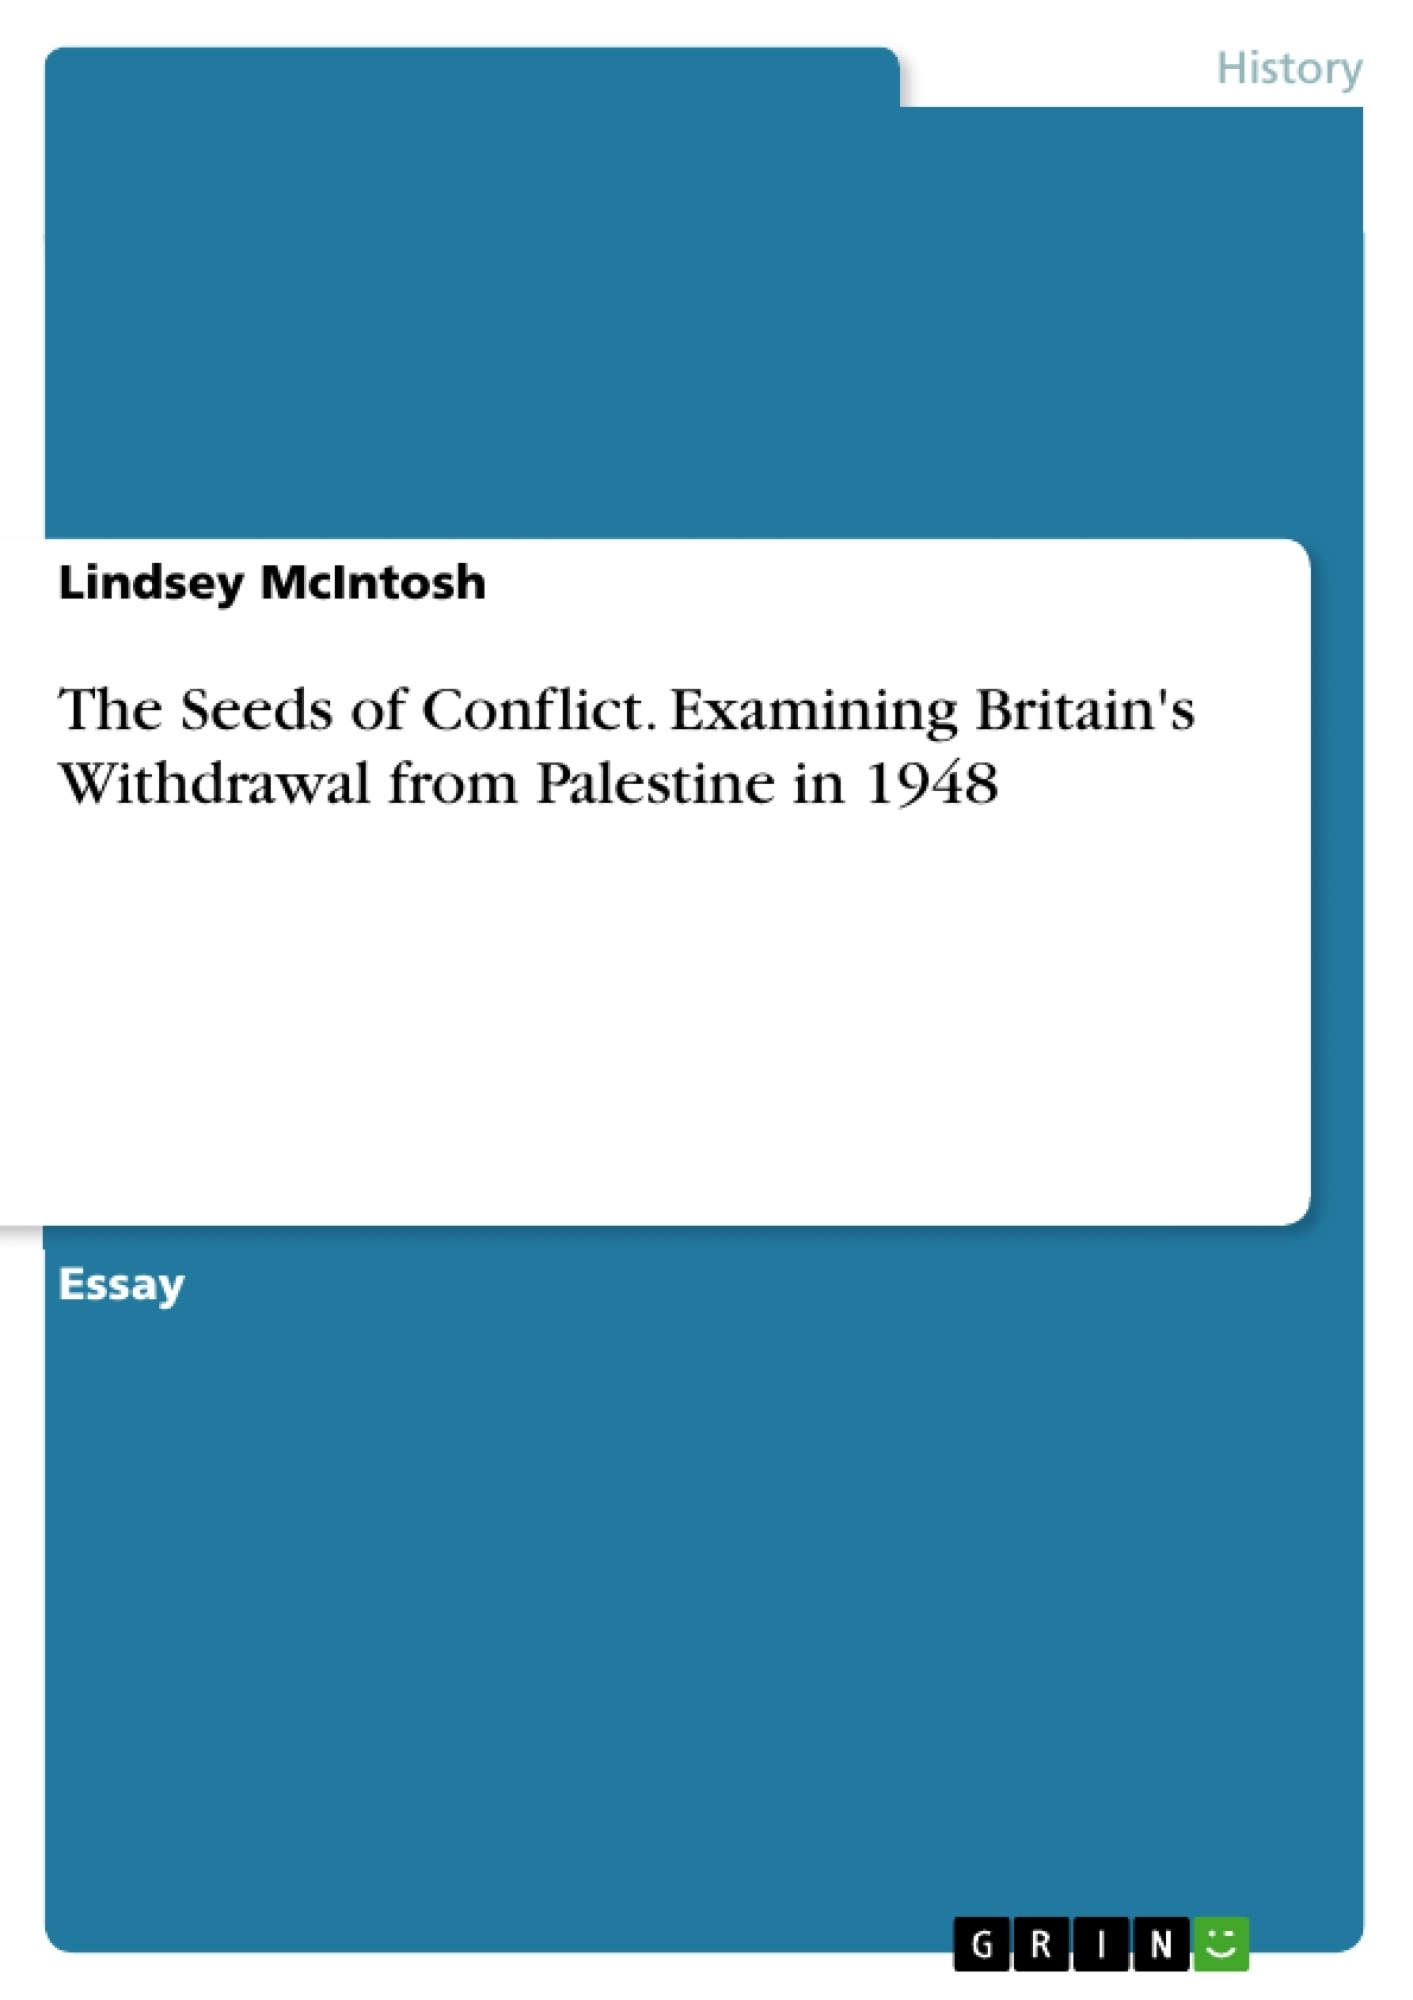 Title: The Seeds of Conflict. Examining Britain's Withdrawal from Palestine in 1948